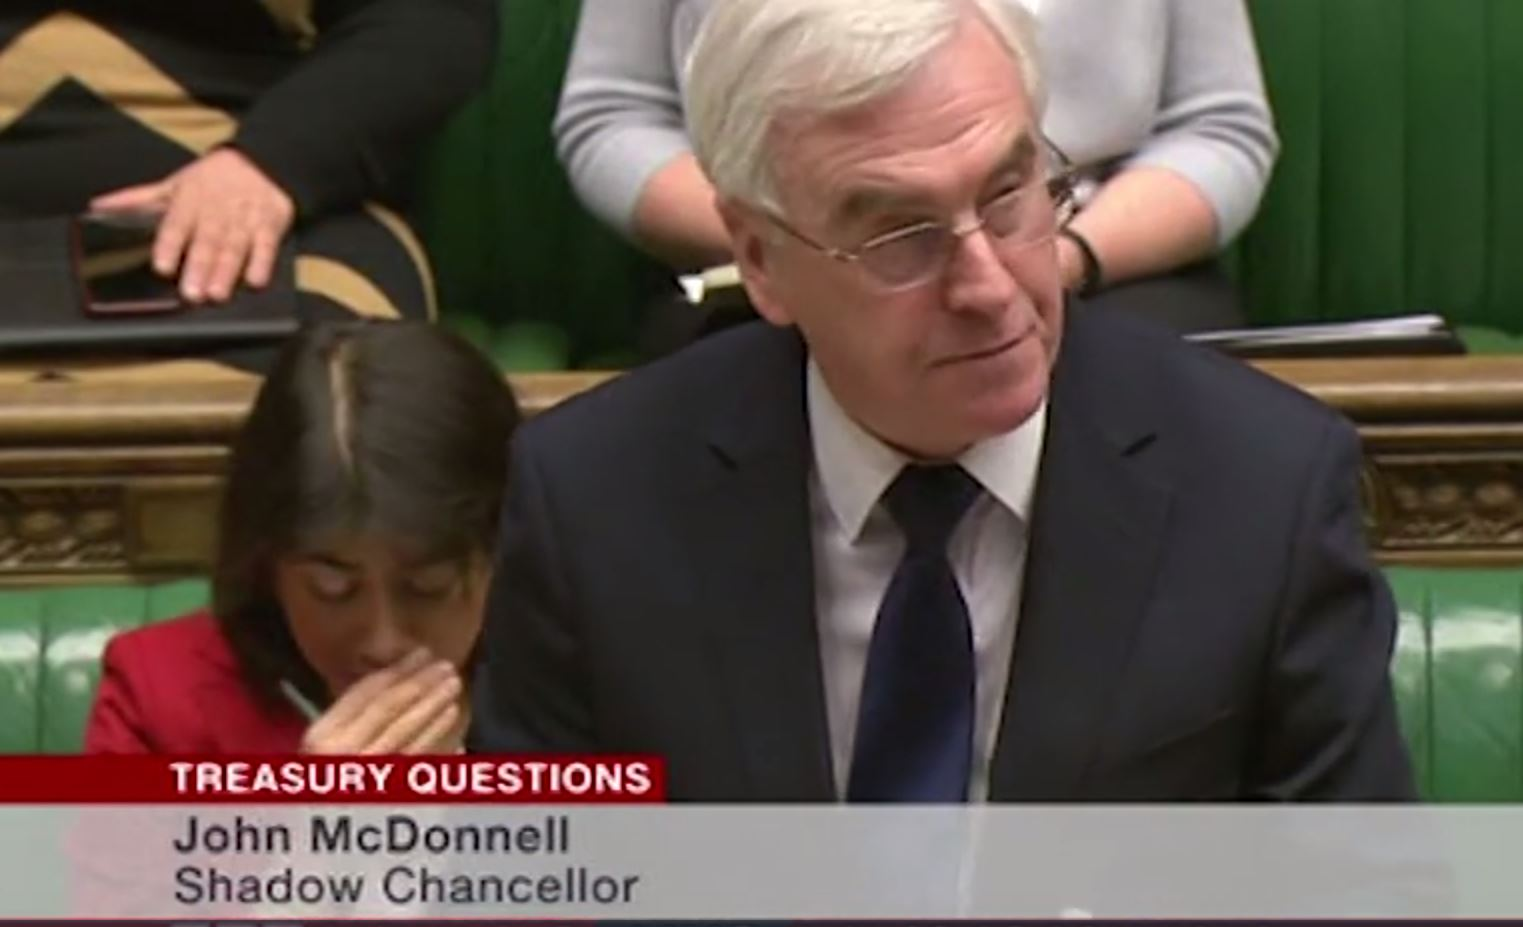 'Shut up your face': John McDonnell just got heckled in the House of Commons